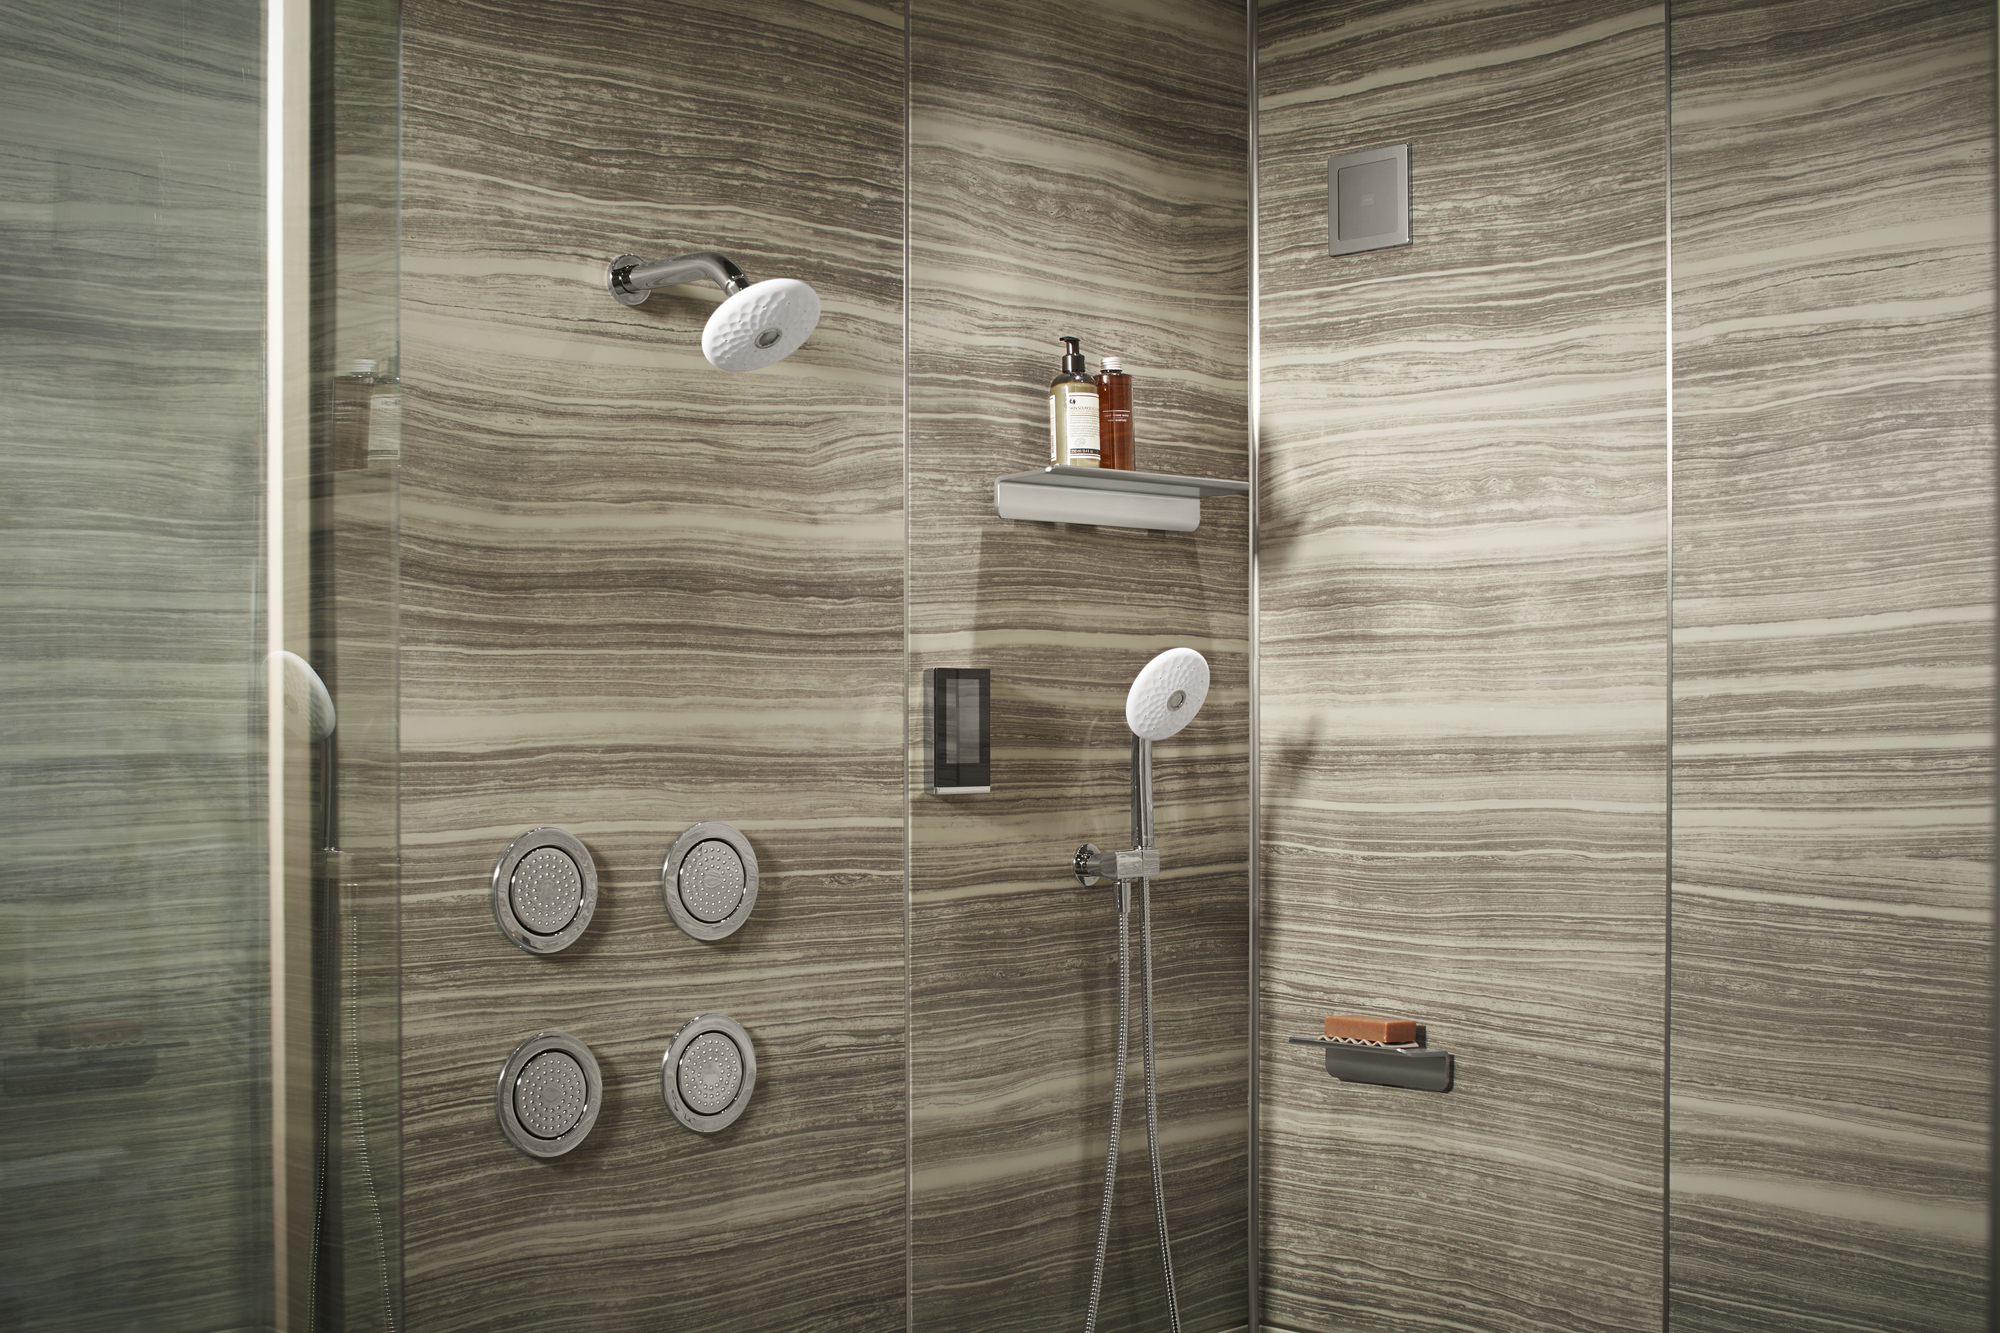 DTV+™ digital interface   Exhale® handshower   Choreograph® shelf   WaterTile® body spray   Exhale showerhead     Control water volume, temperature and steam more quickly with a digital touchscreen.